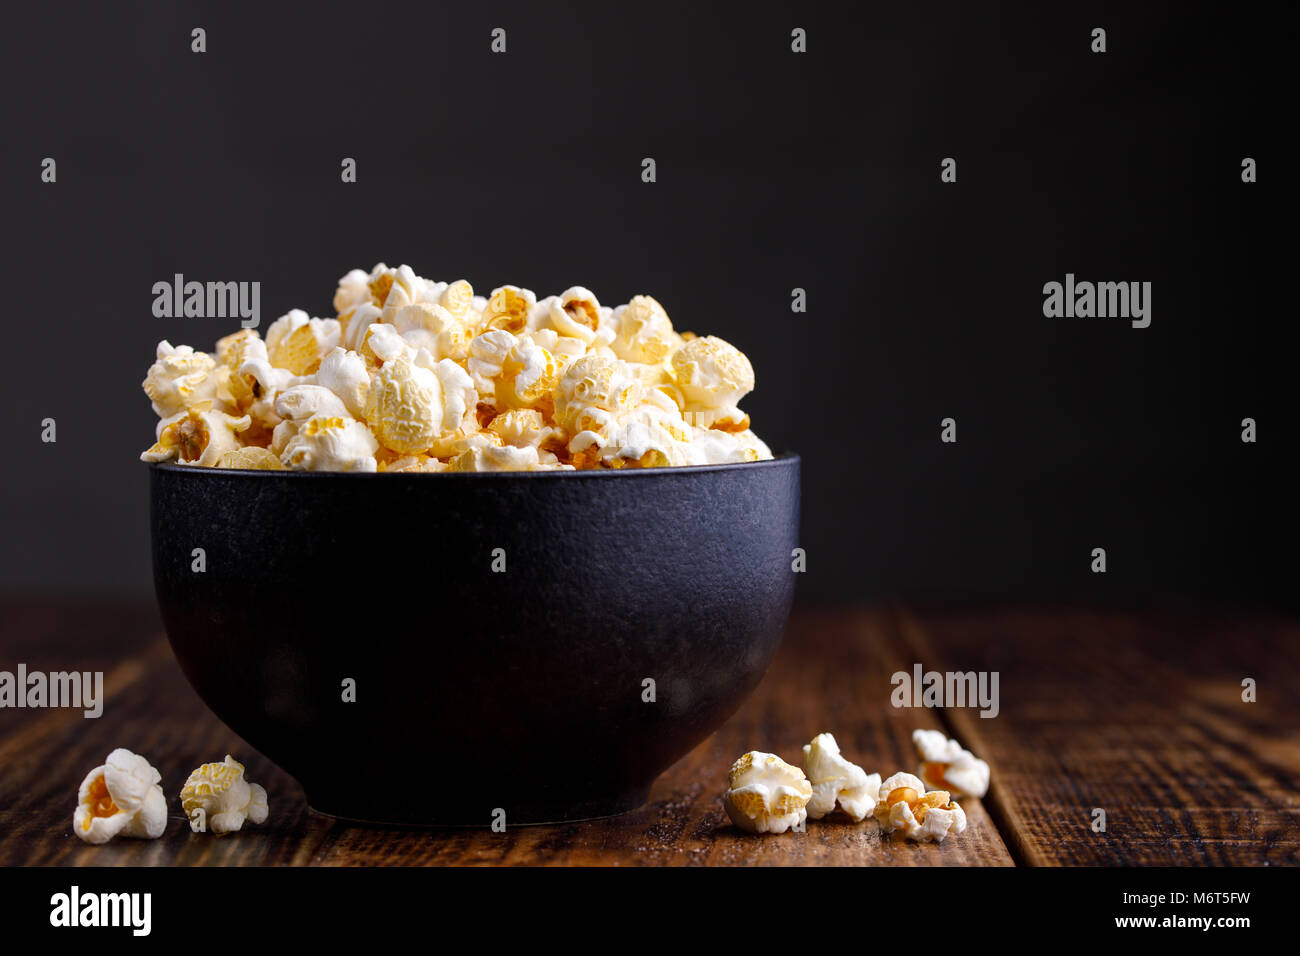 Popcorn in a ceramic bowl and scattered on a wooden background. - Stock Image